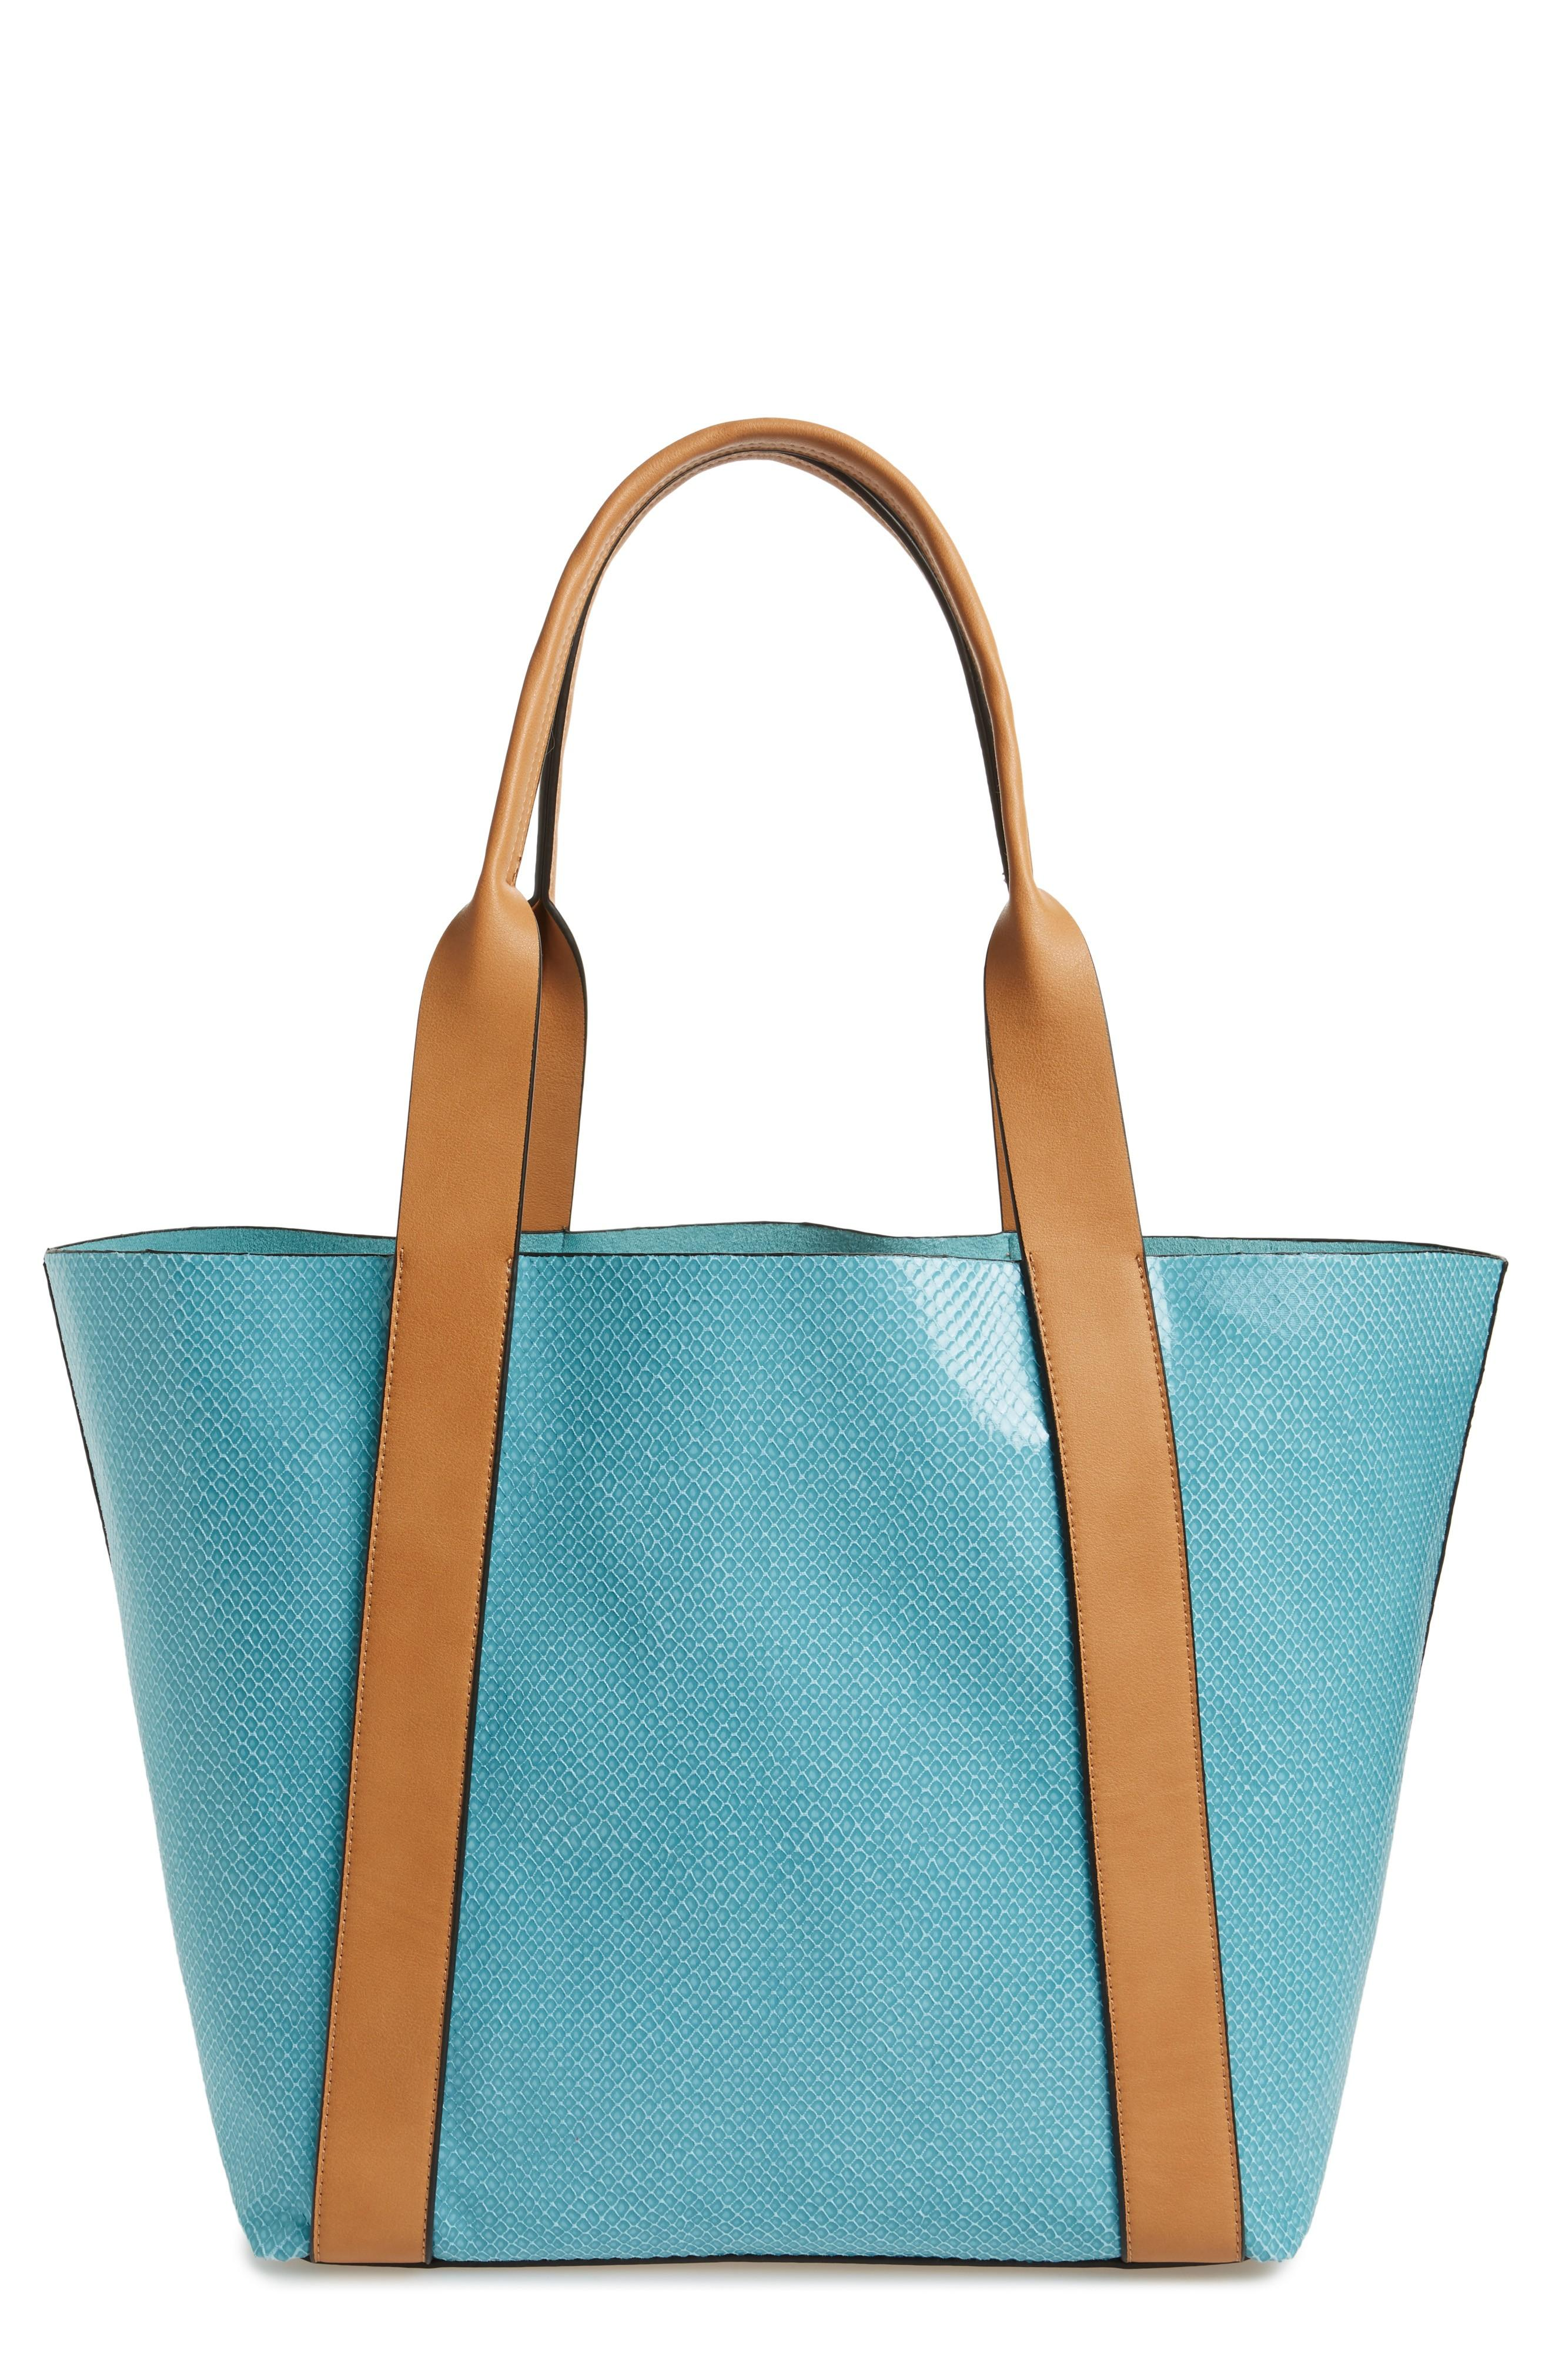 Sondra Roberts Faux Leather Tote & Wristlet - Blue In Turquoise